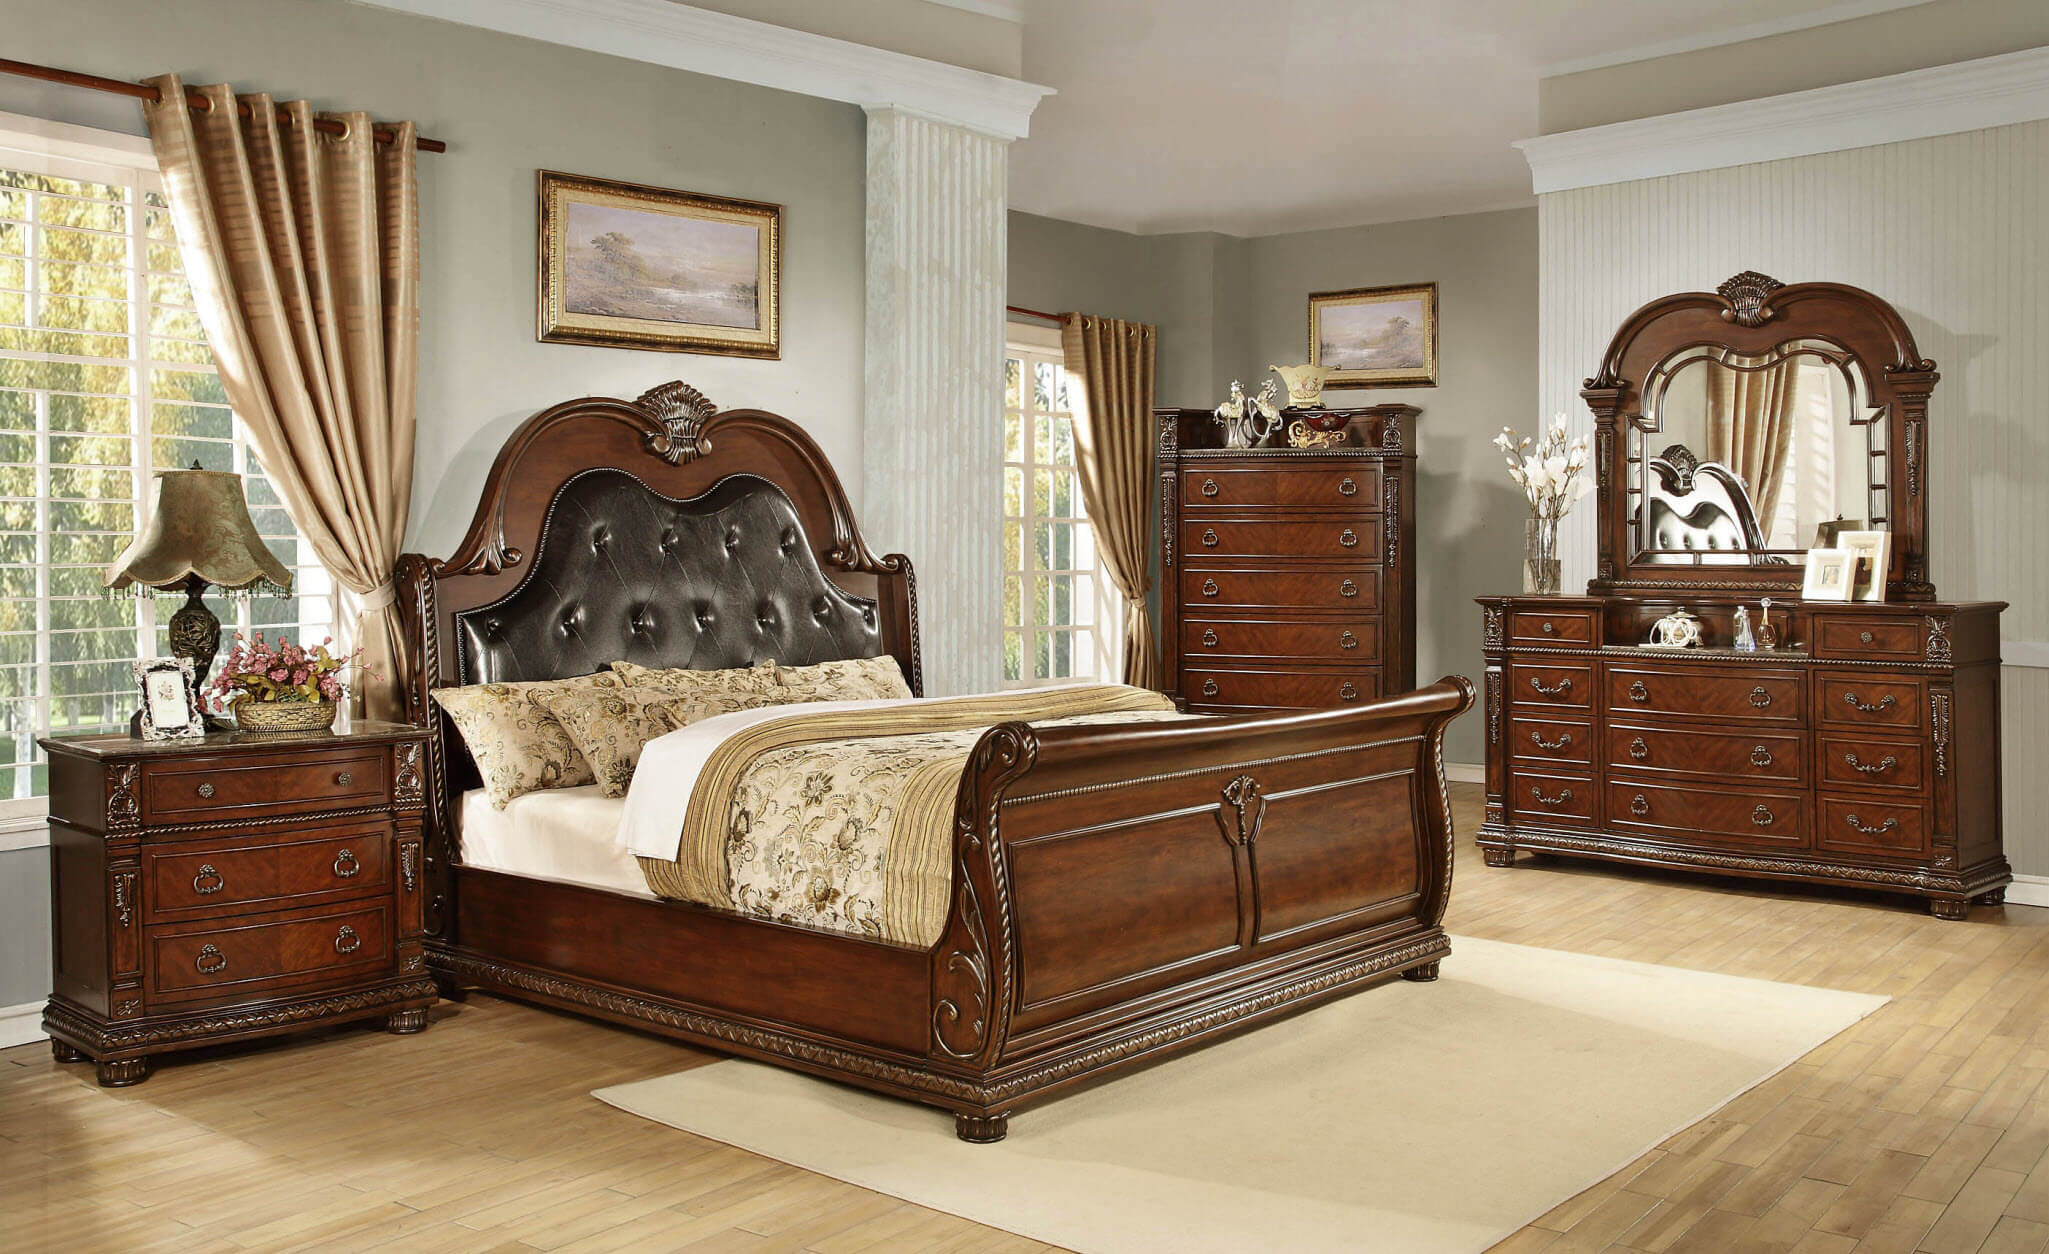 B718 Palace Marble Top Bedroom Set by Global Trading